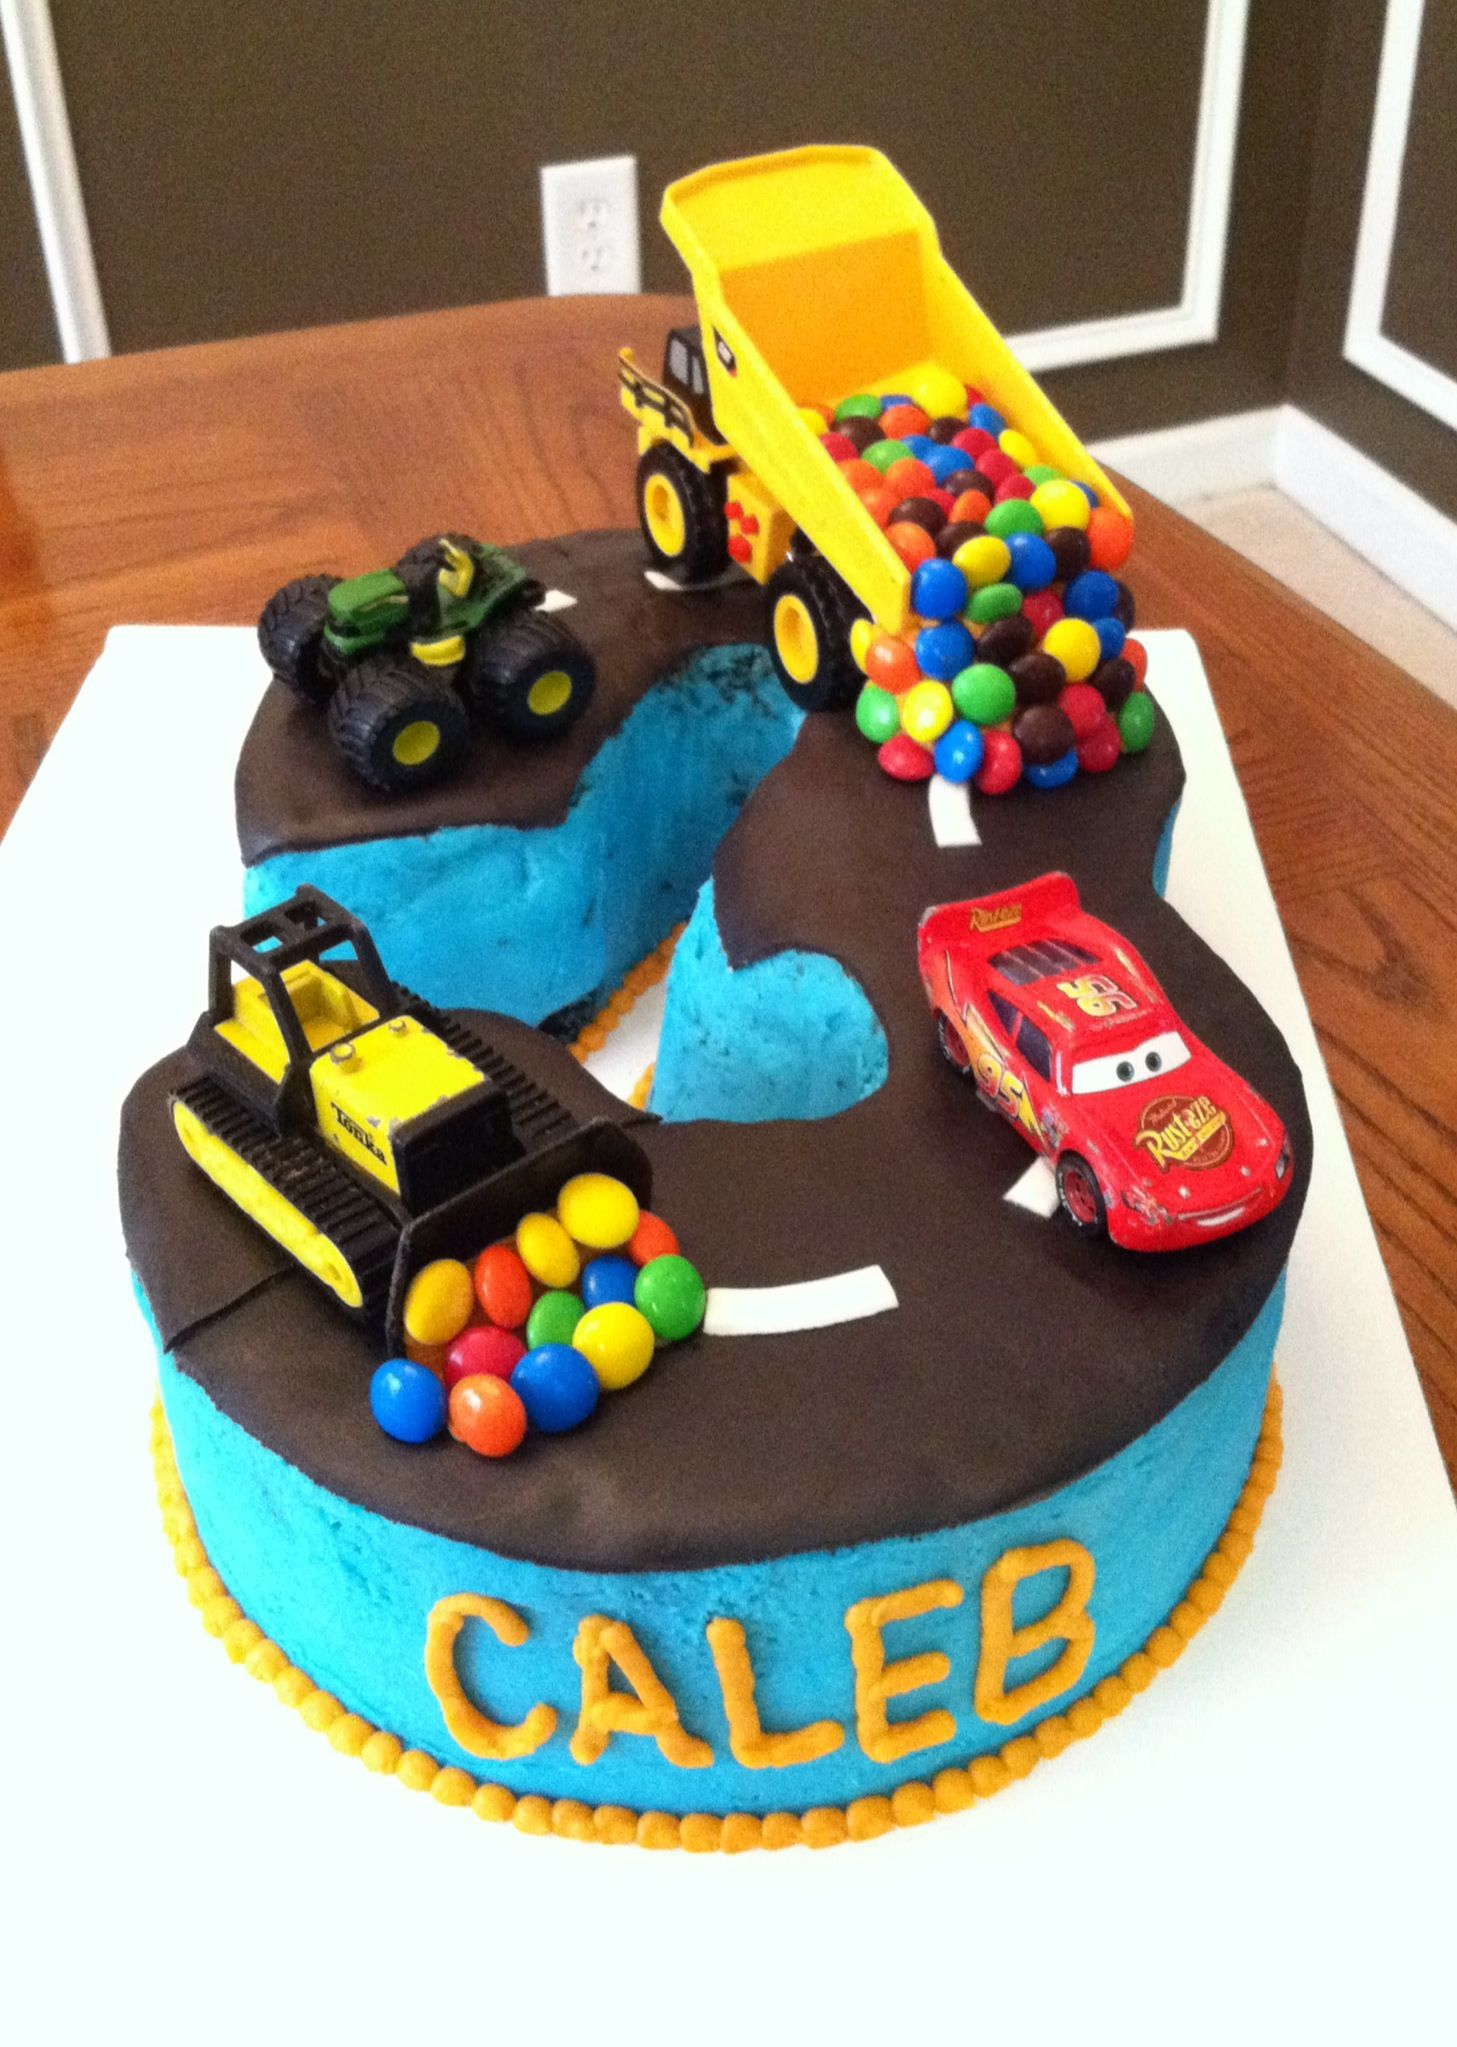 TruckTractorCarRoadNumber  Cake Creations By Bethany Me - 3 birthday cake